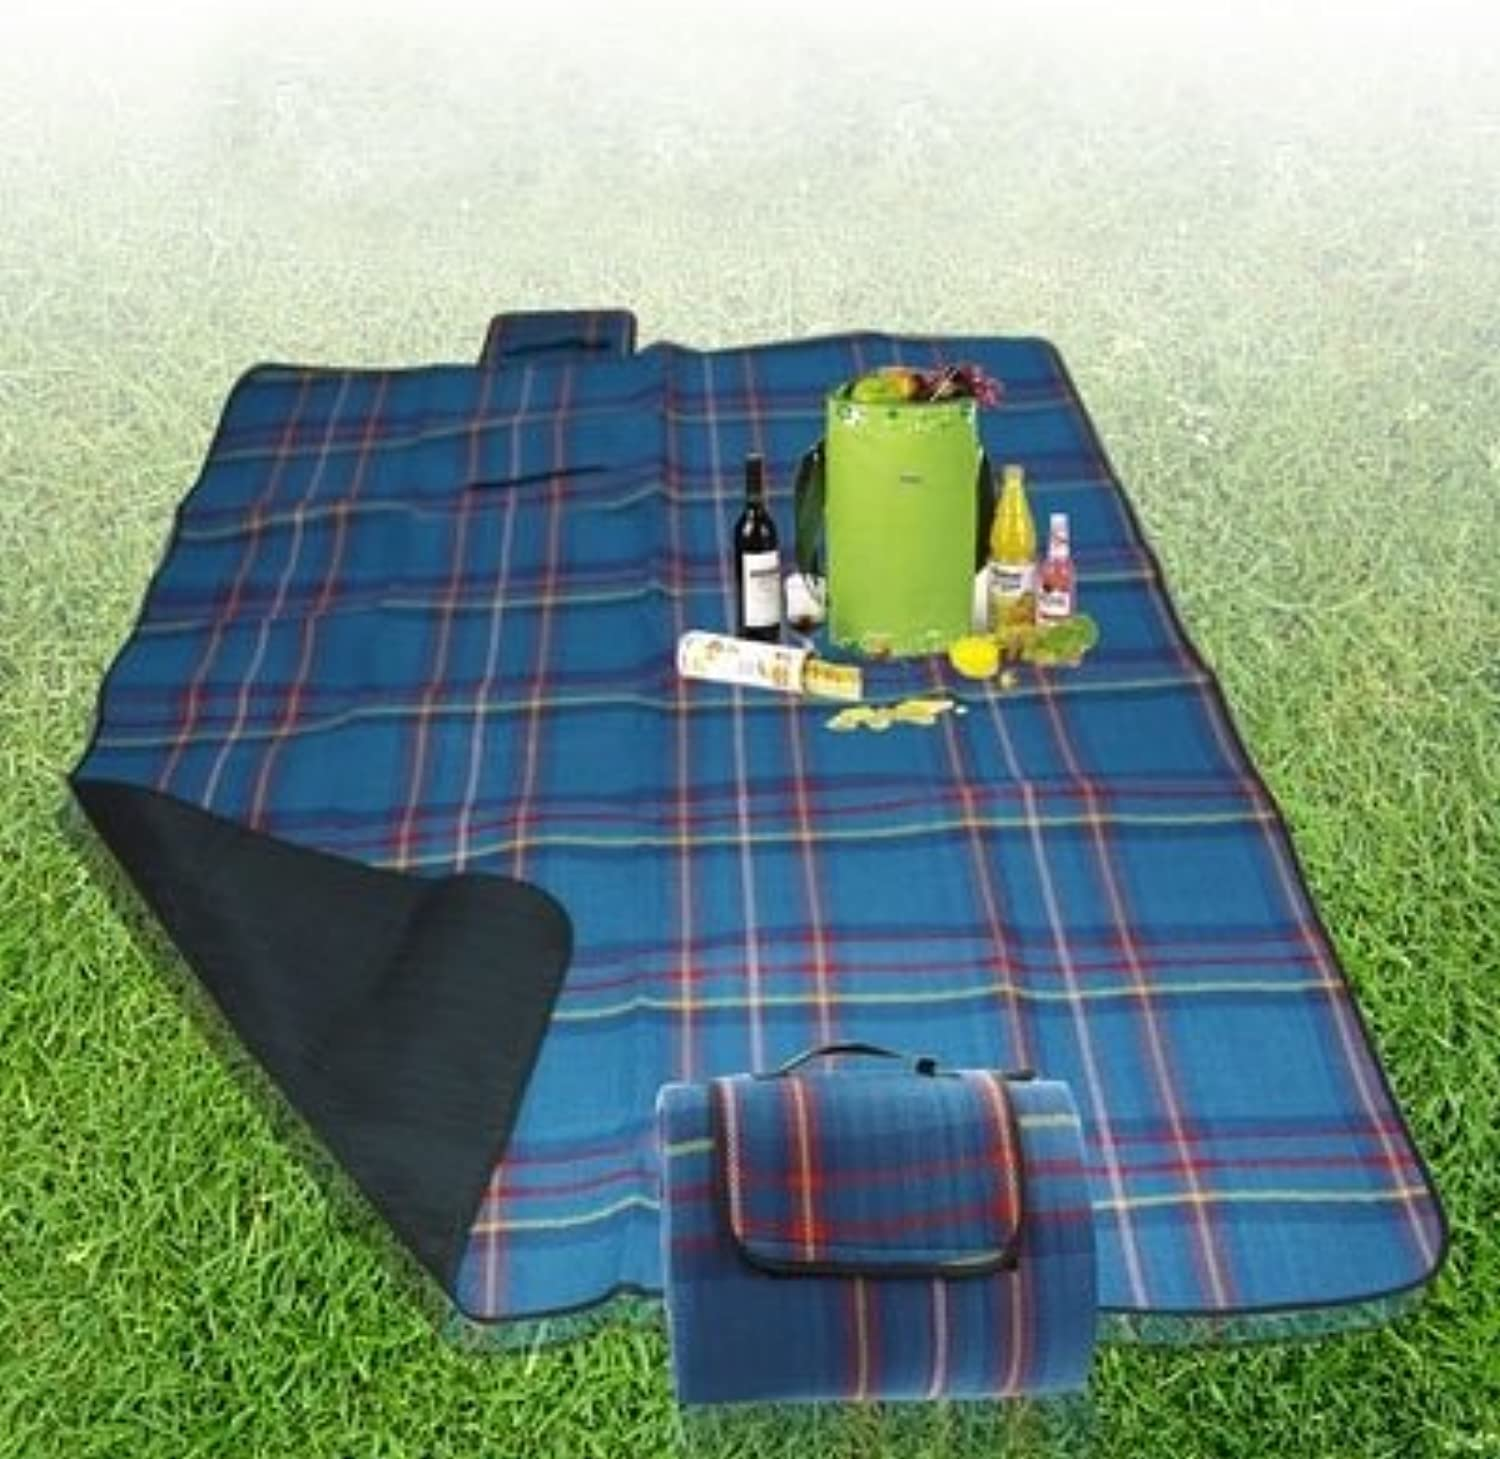 VAXT Direct 200x150cm Outdoor Beach Camping Mat Picnic Blanket